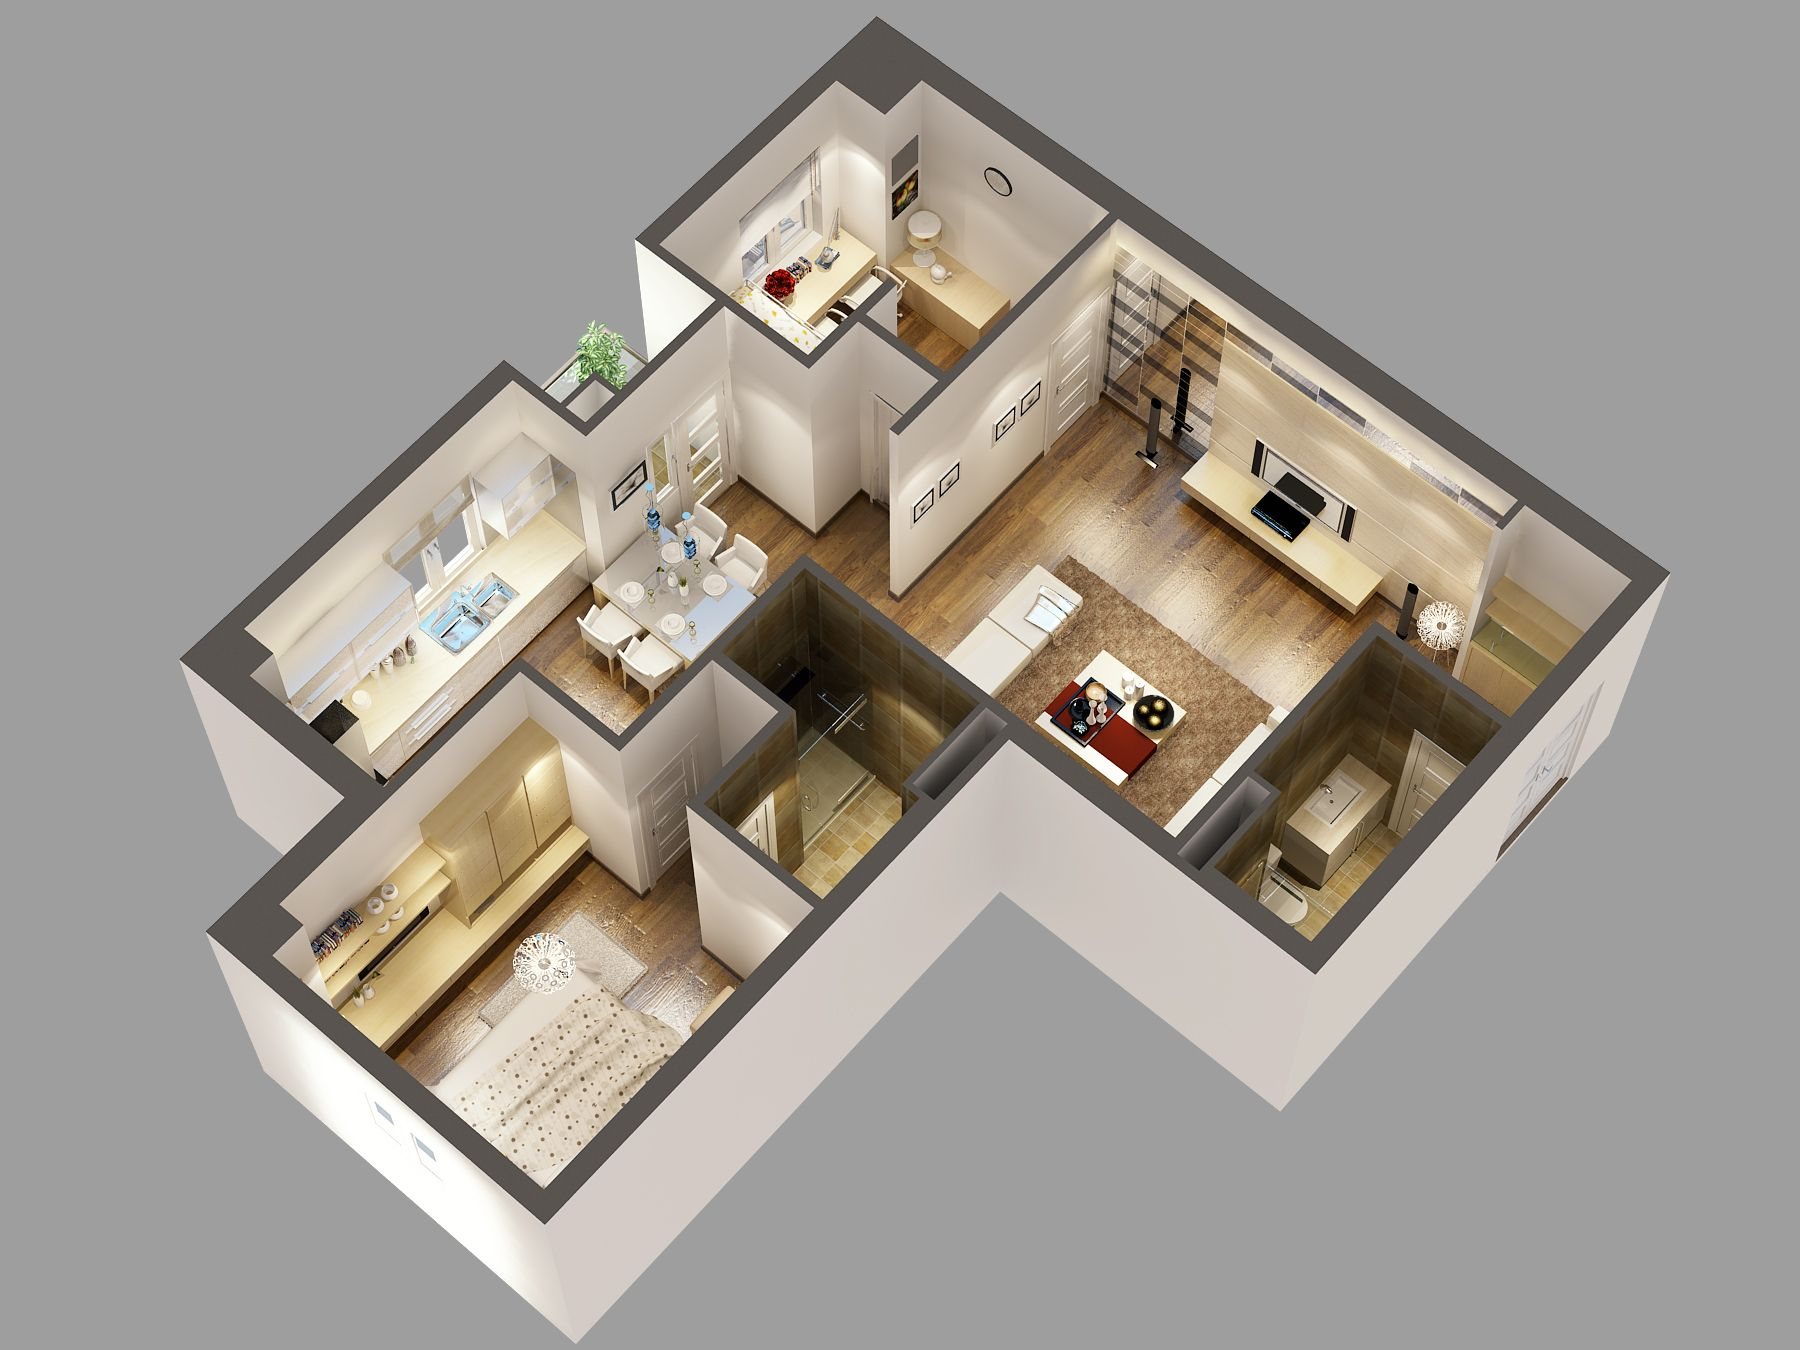 Home 3D Design Online Model 3D Floor Plan Software Free With Awesome Modern Interior Design .